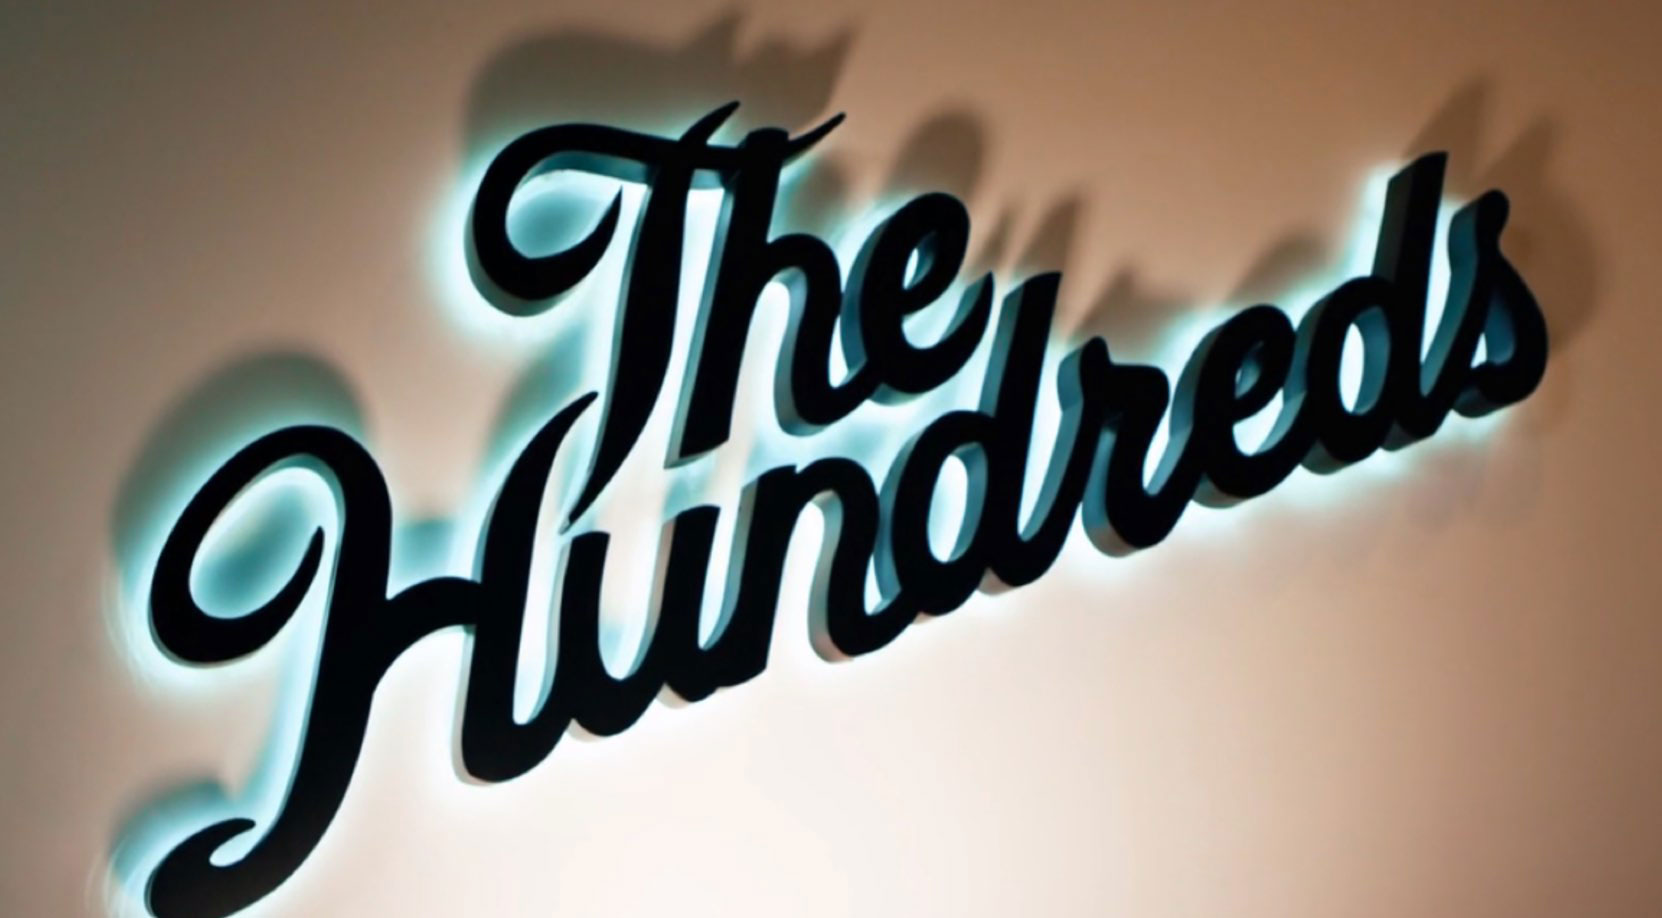 Thehundreds video placeholder